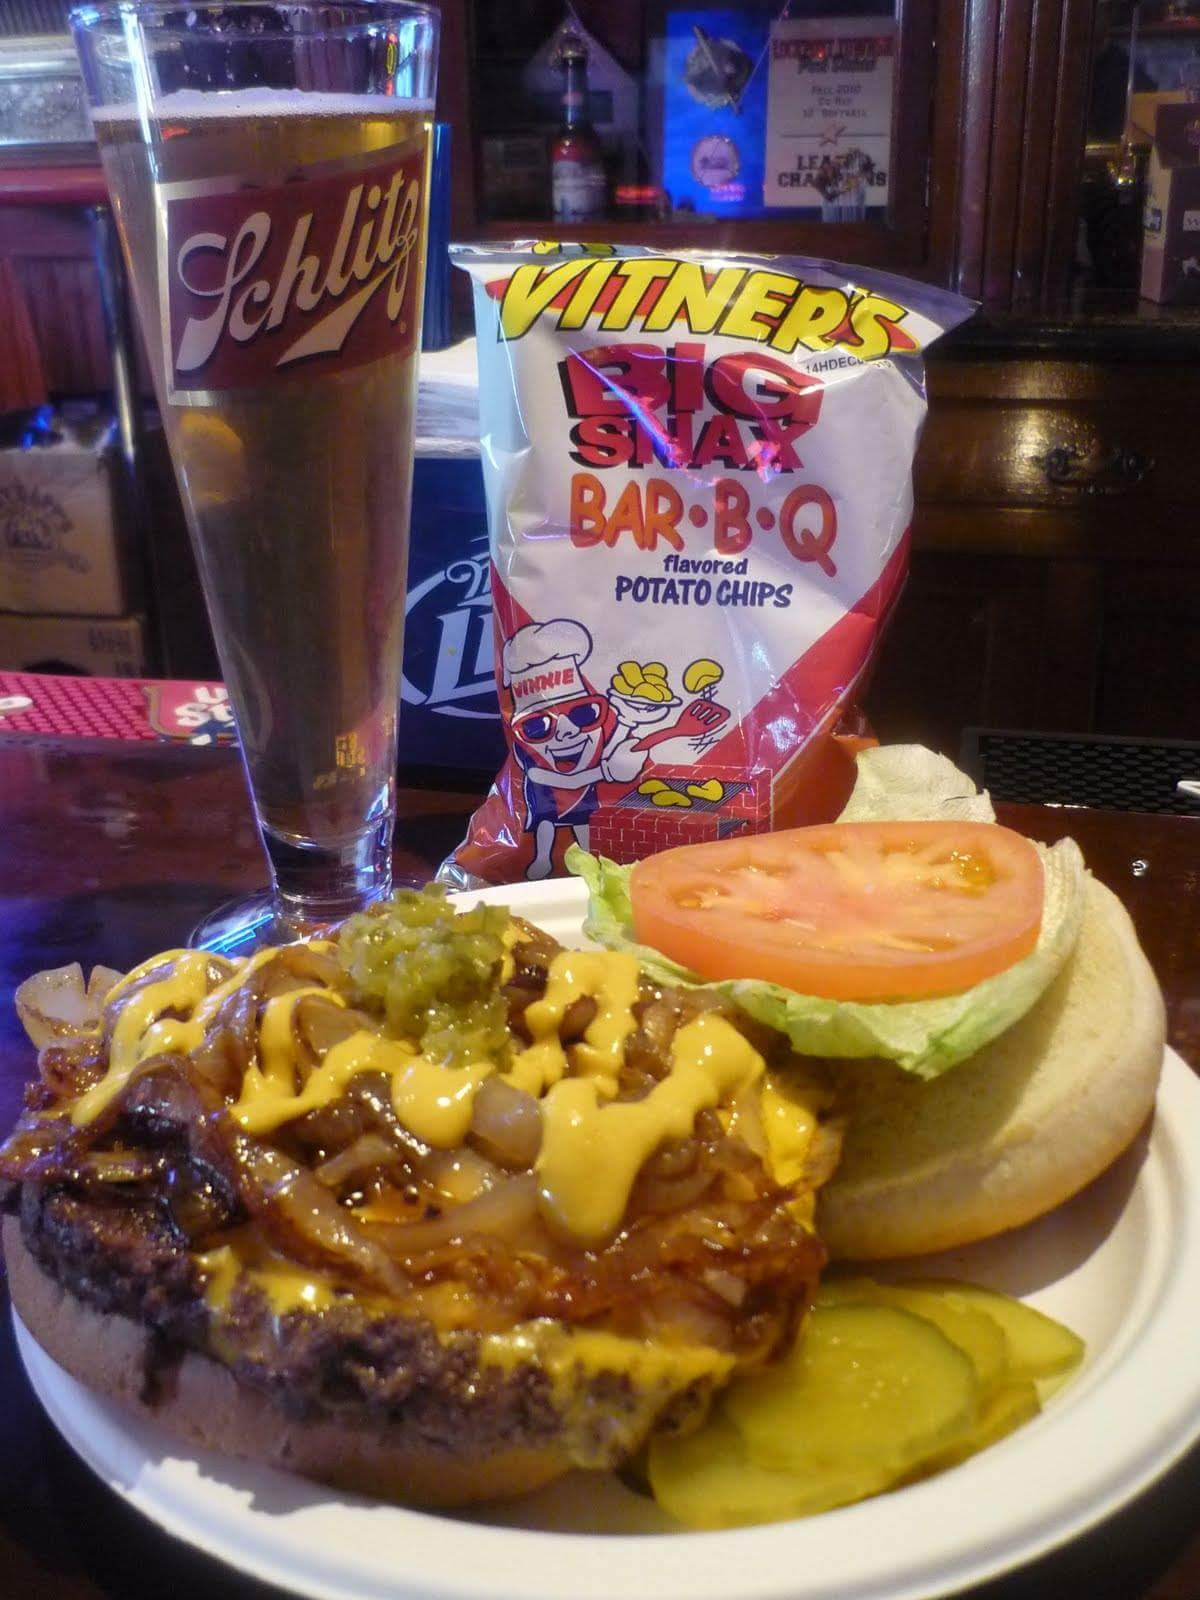 Nick's burger with a bag of bbq chips and a cup of beer.